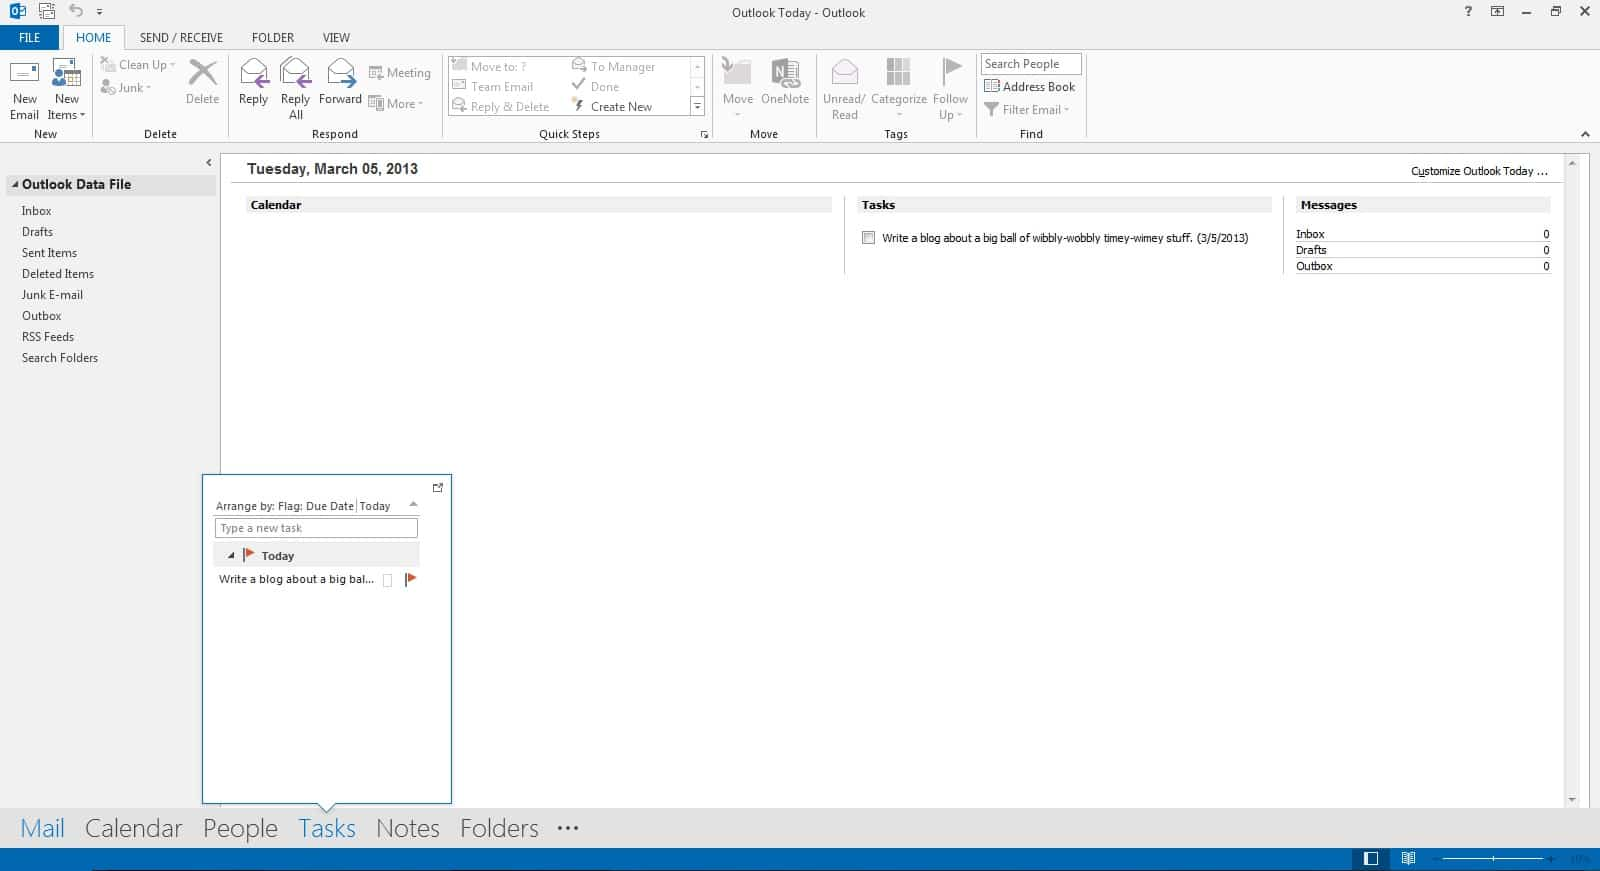 Outlook 2013 Navigation Bar